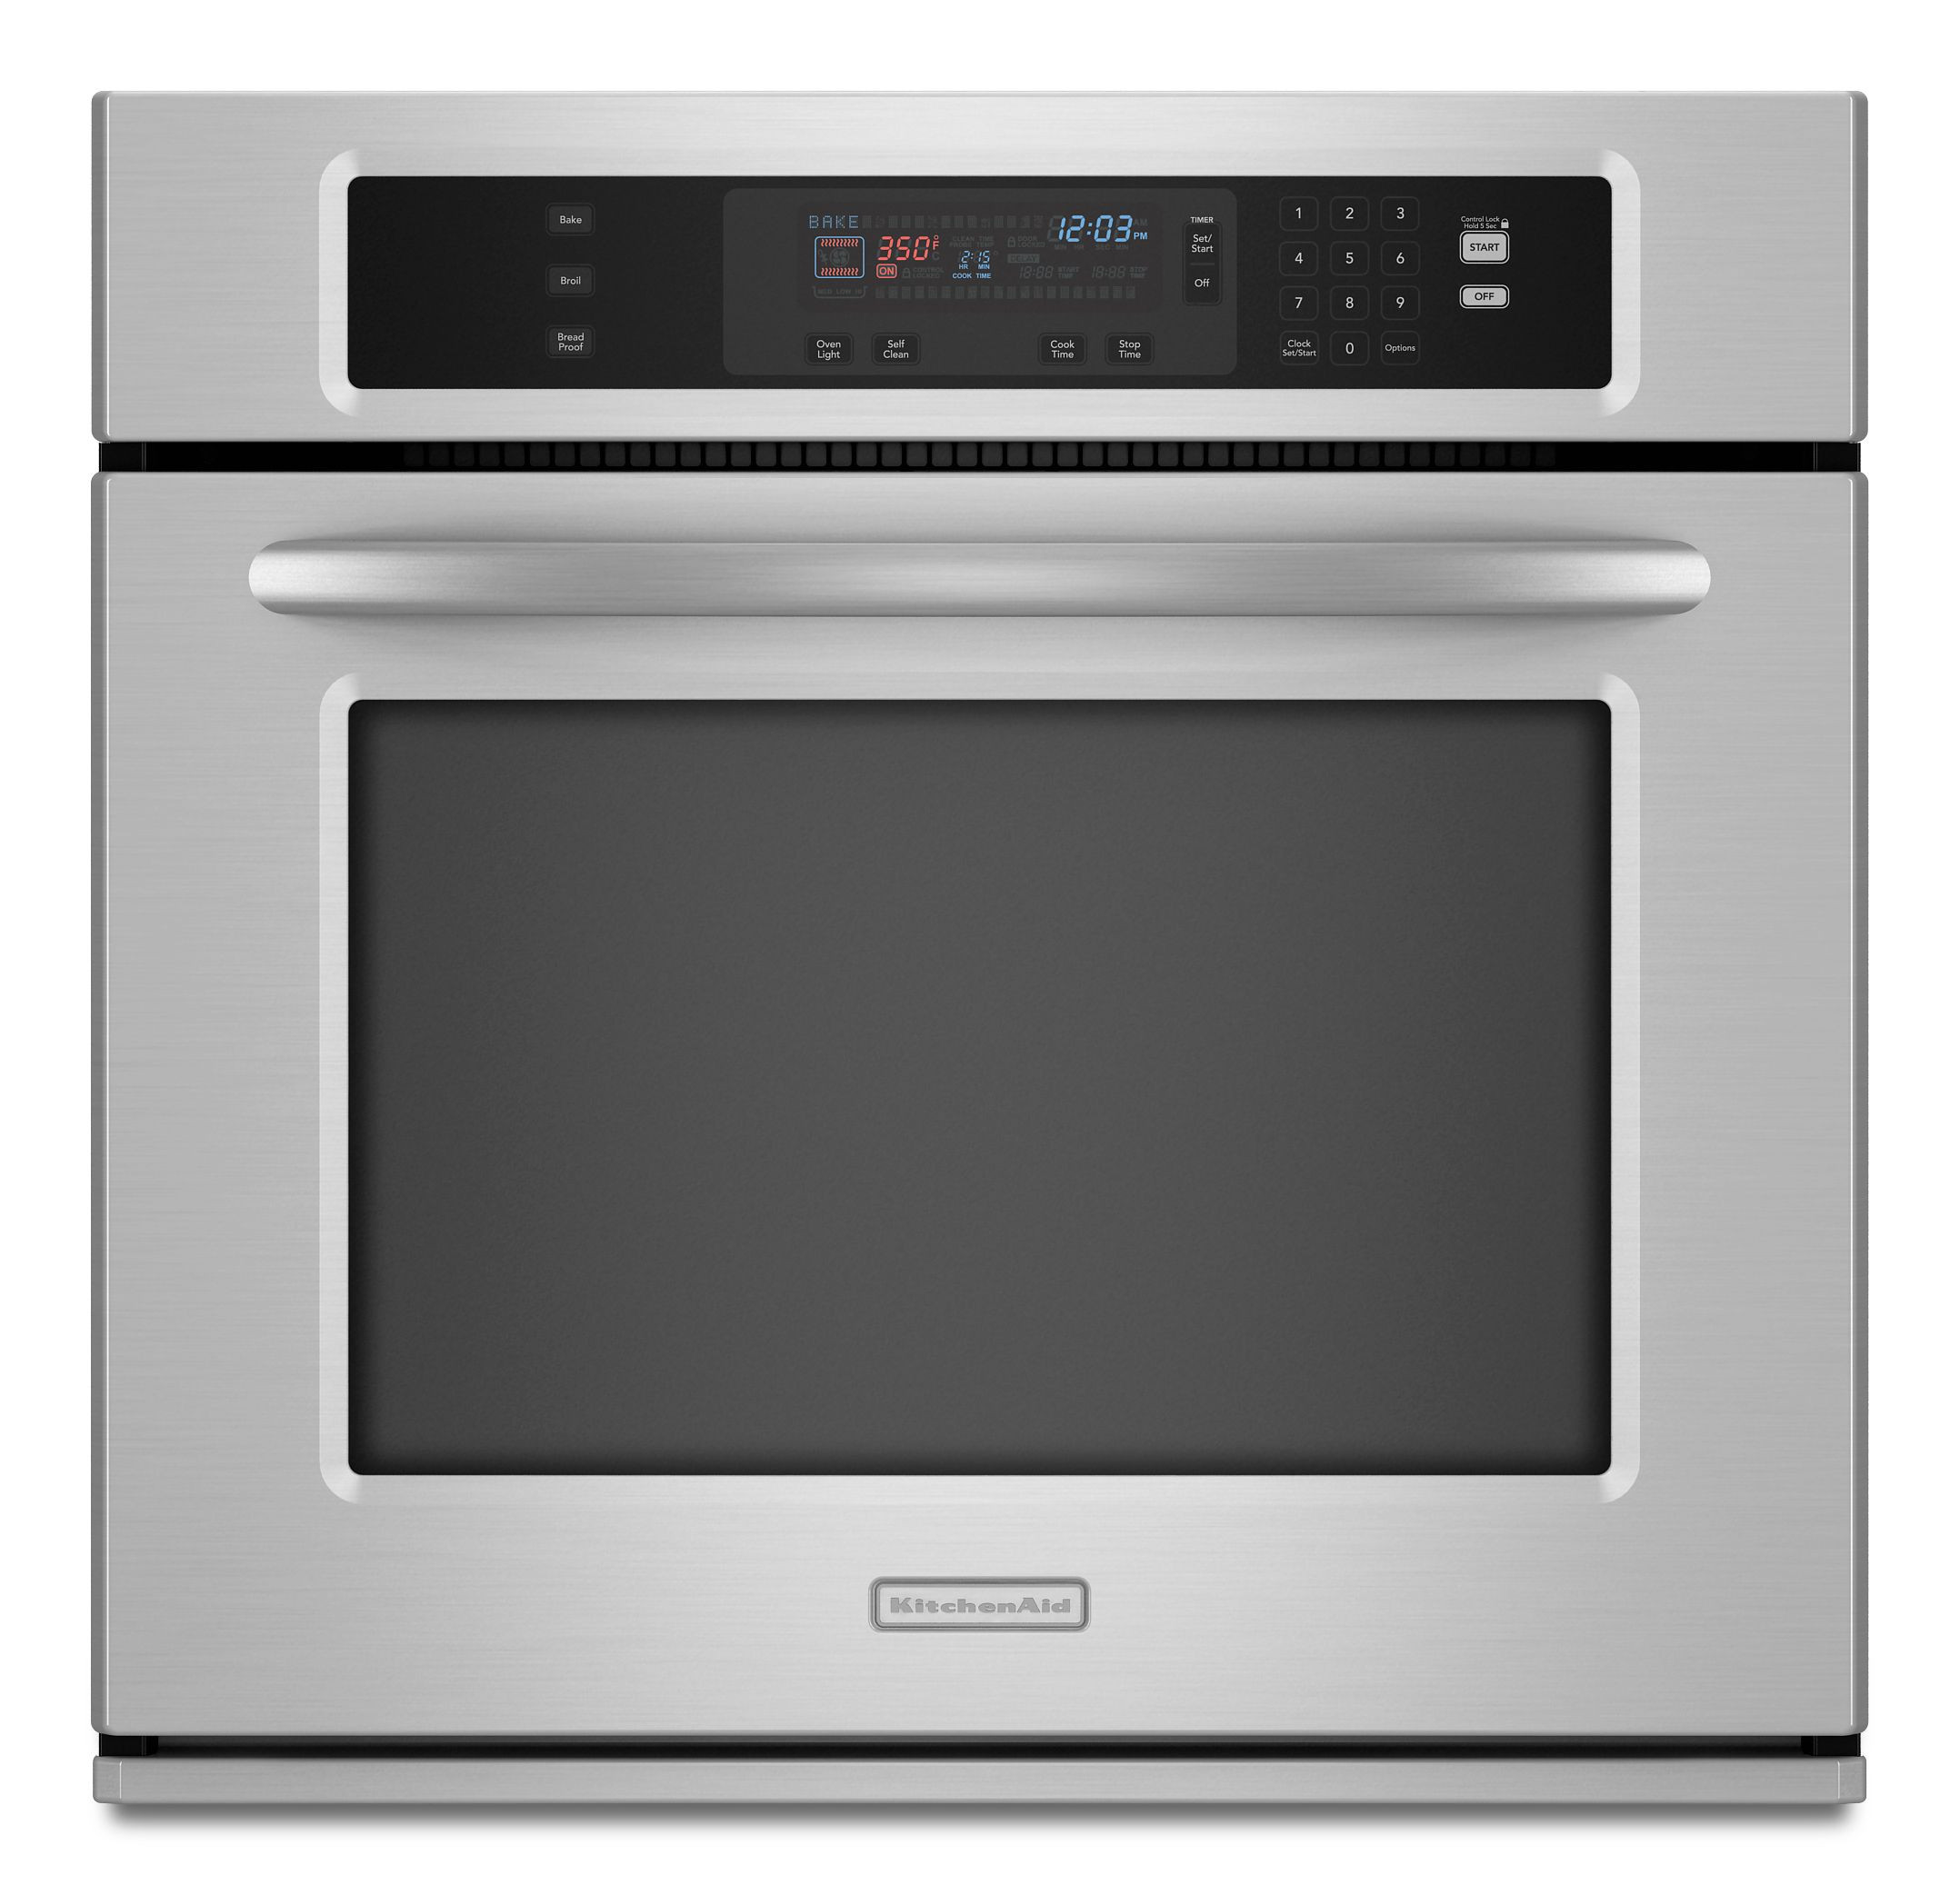 Kitchen Aid Wall Oven  KitchenAid Electric Single Wall Oven 27 in KEBK171SSS Sears